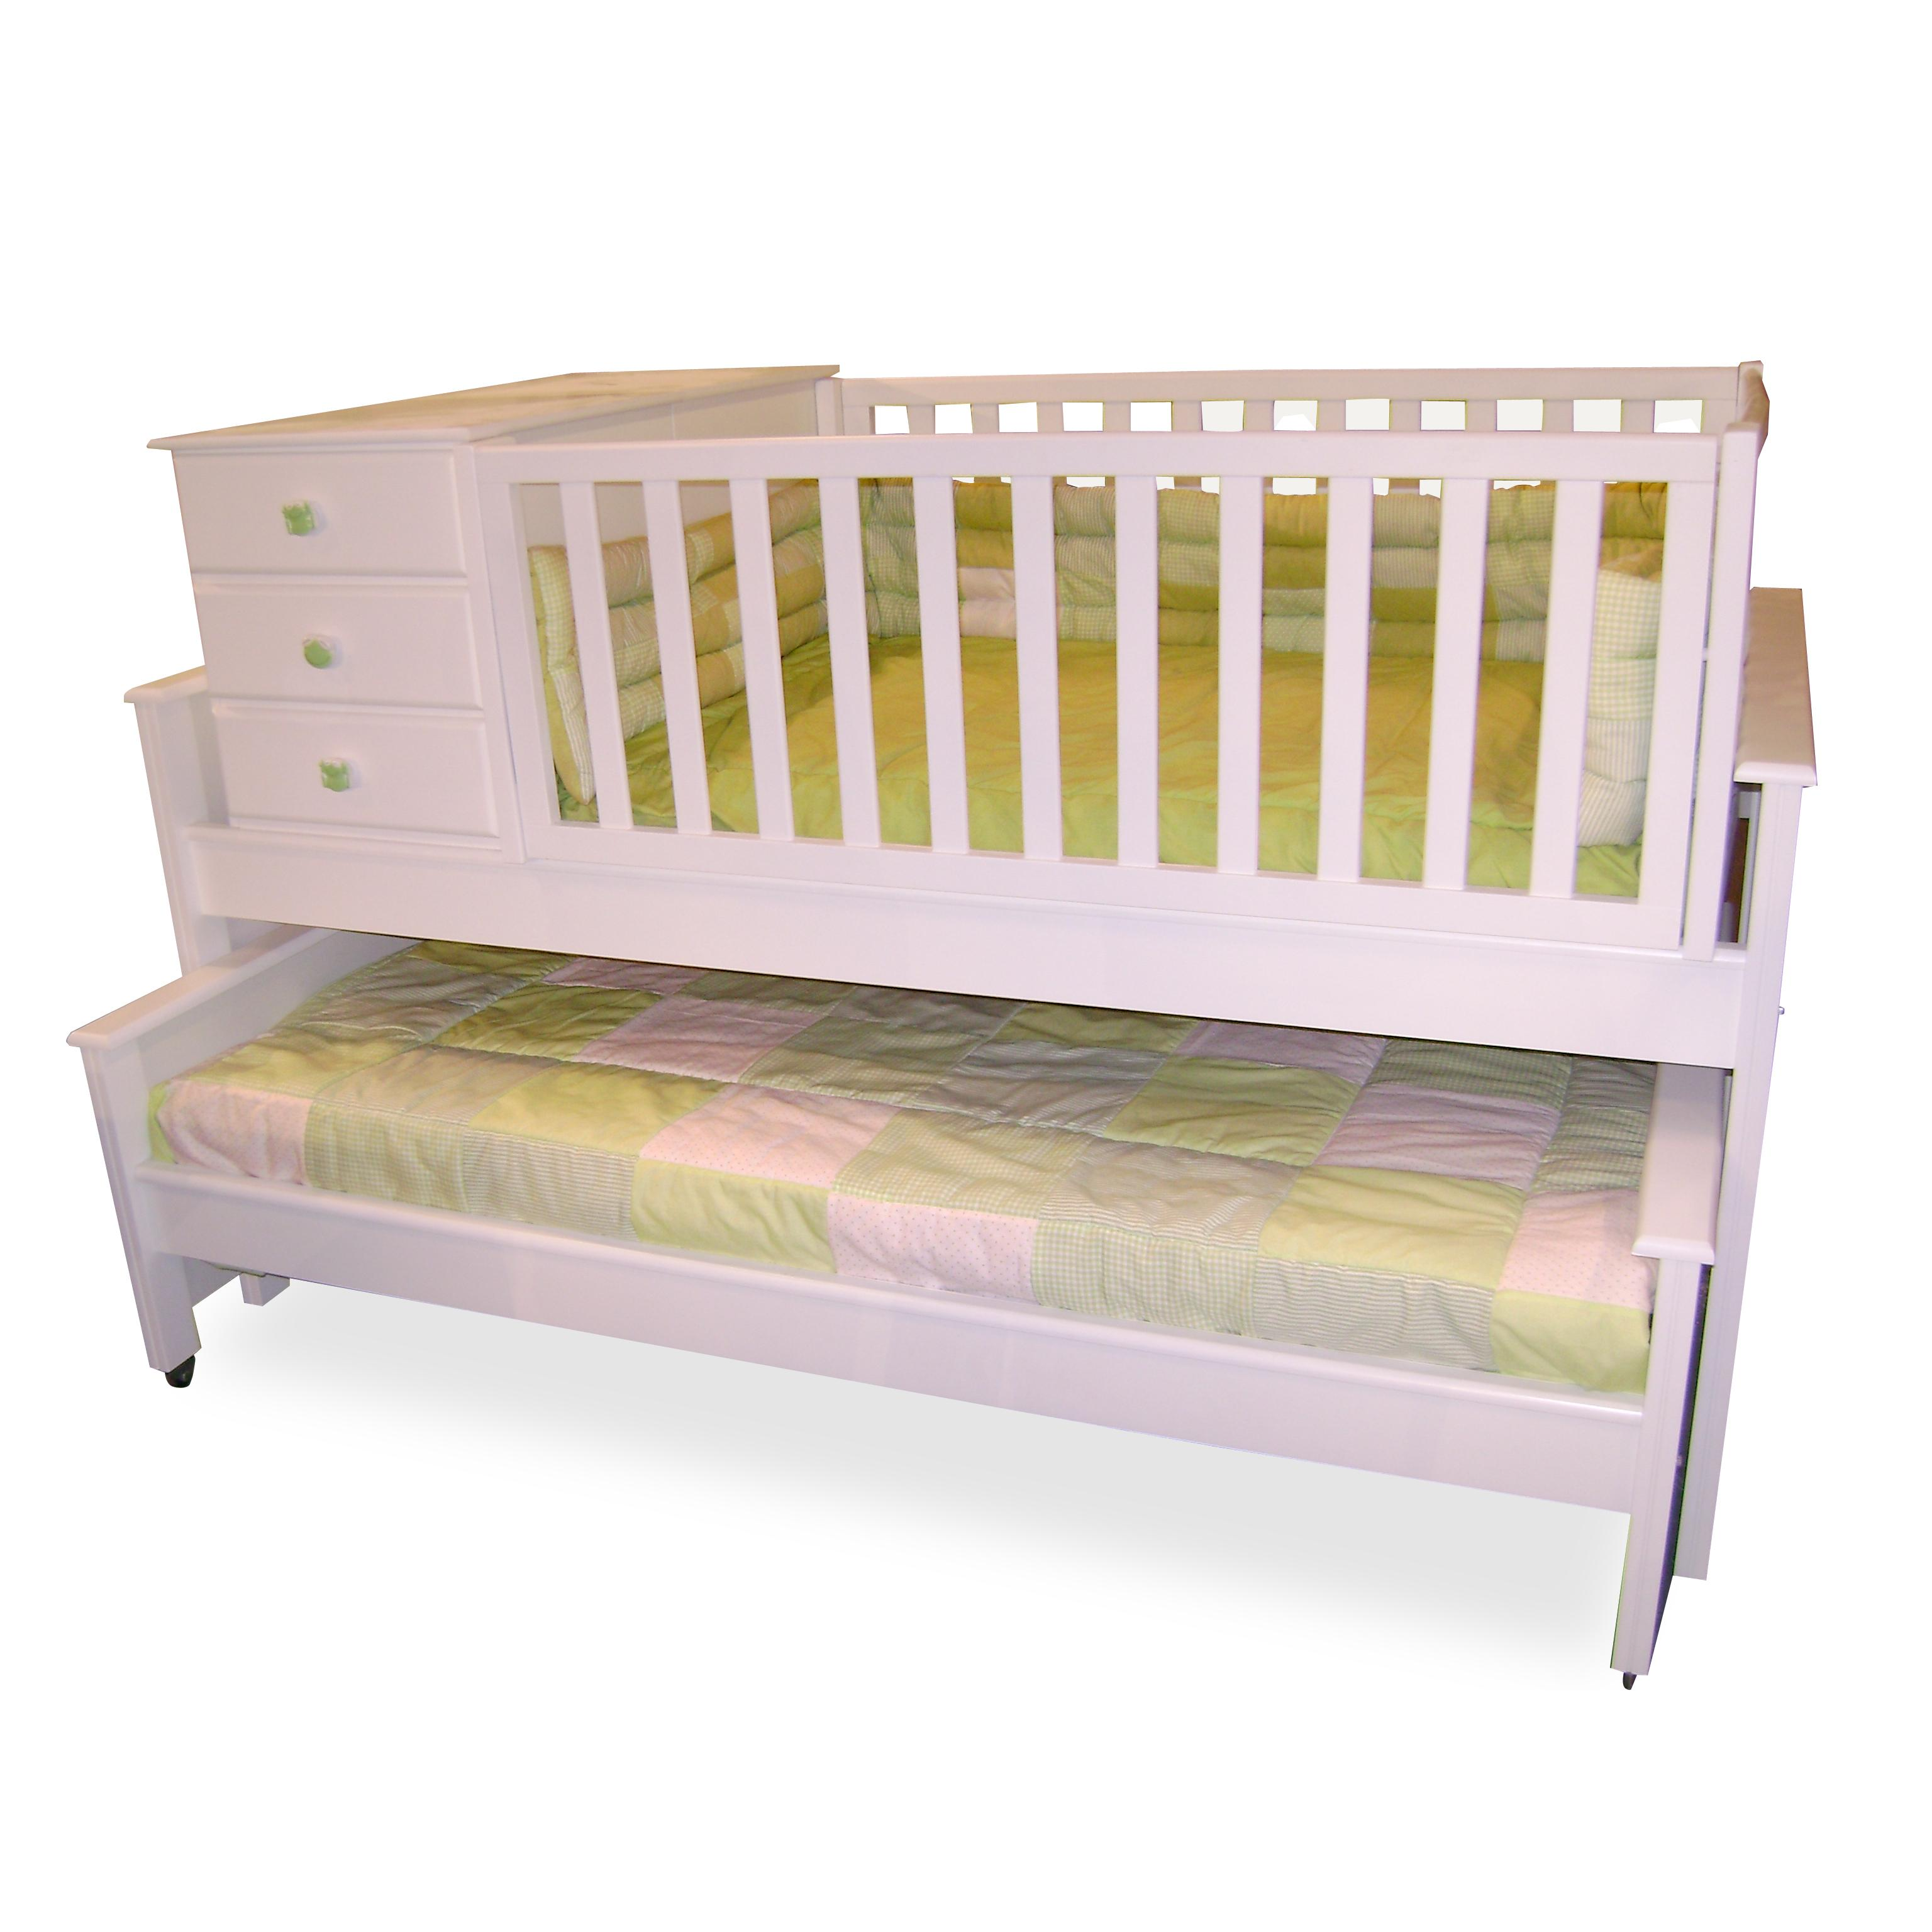 Cama nido doble nest con funcional f brica de muebles for Cama nido doble barata